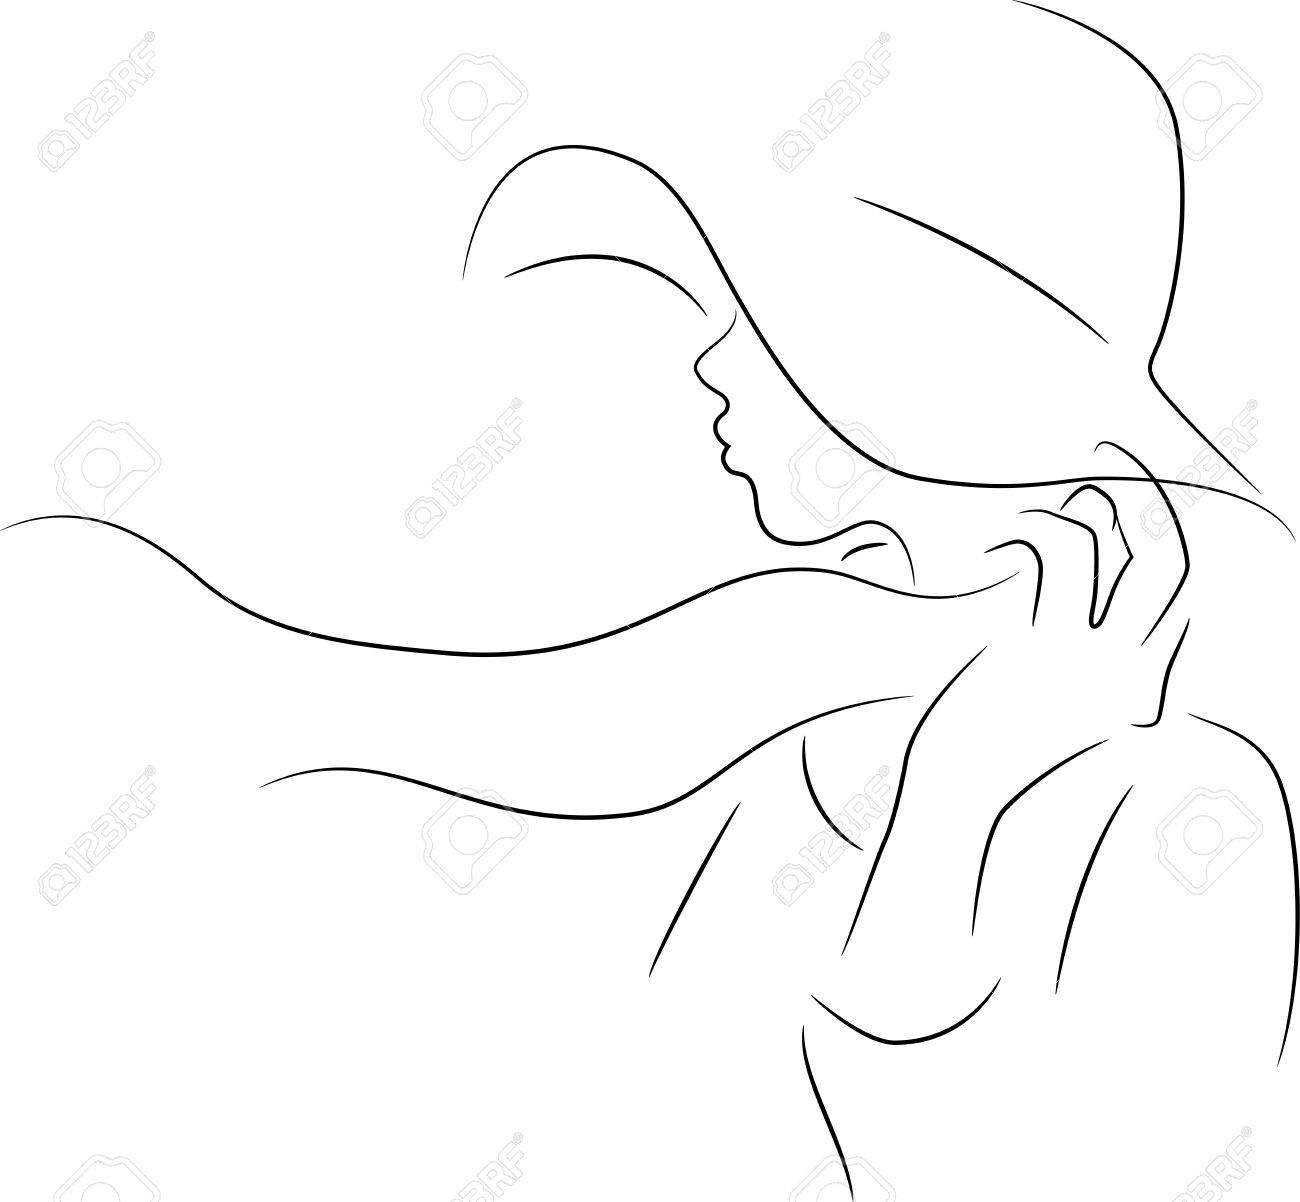 A woman with a hat silhouette Stock Vector - 19719891